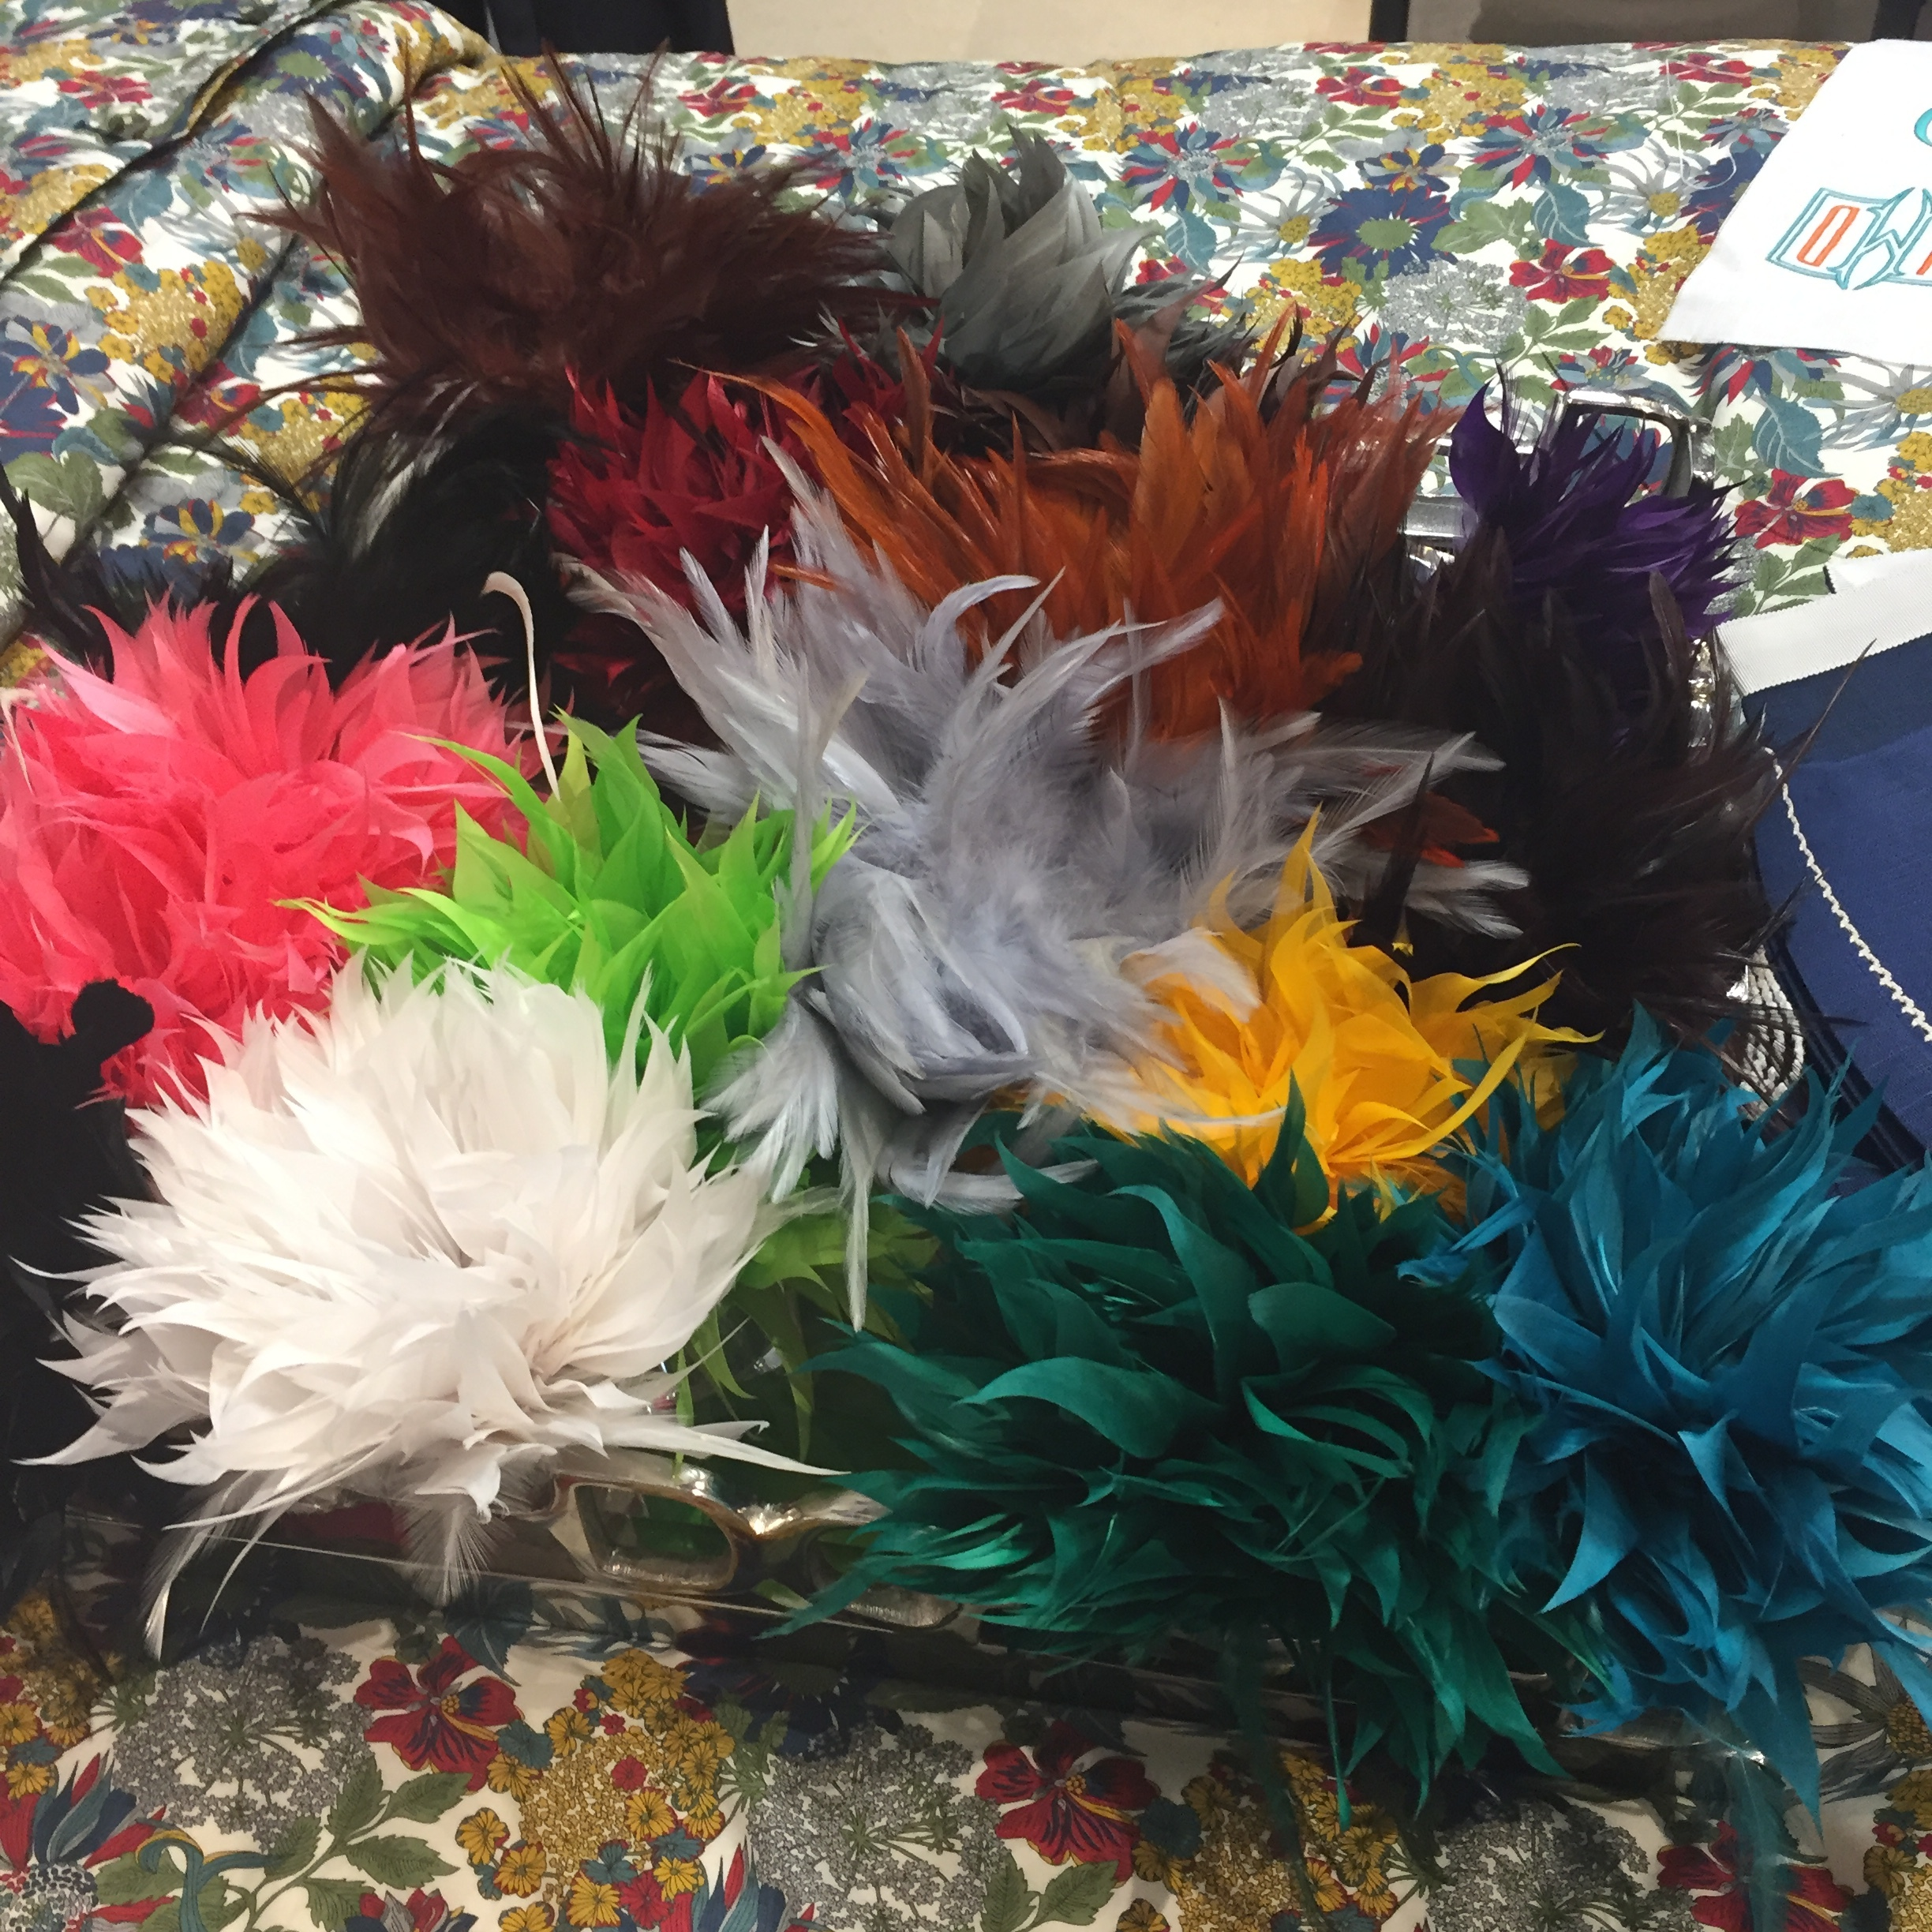 Playful feather napkin rings - what a way to dress up a table!